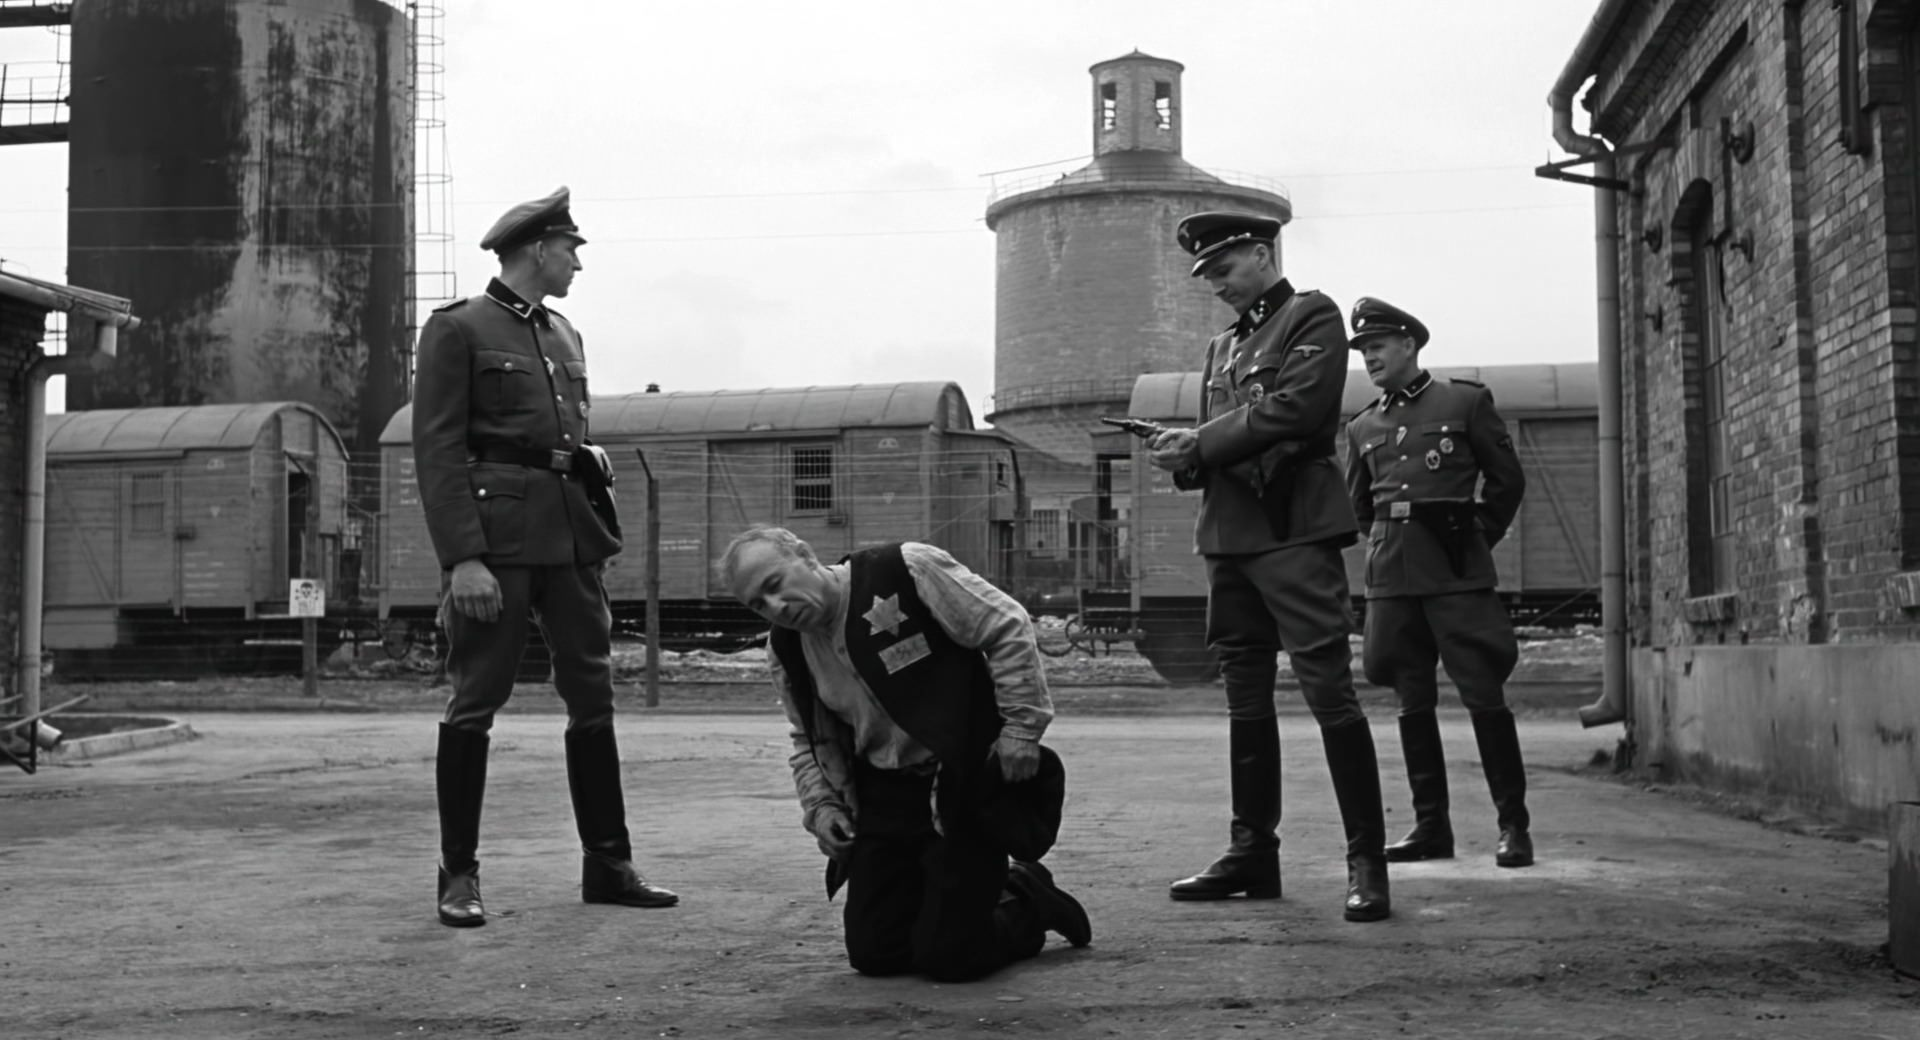 Ralph Fiennes, Ezra Dagan, Jochen Nickel, and Norbert Weisser in Schindler's List (1993)